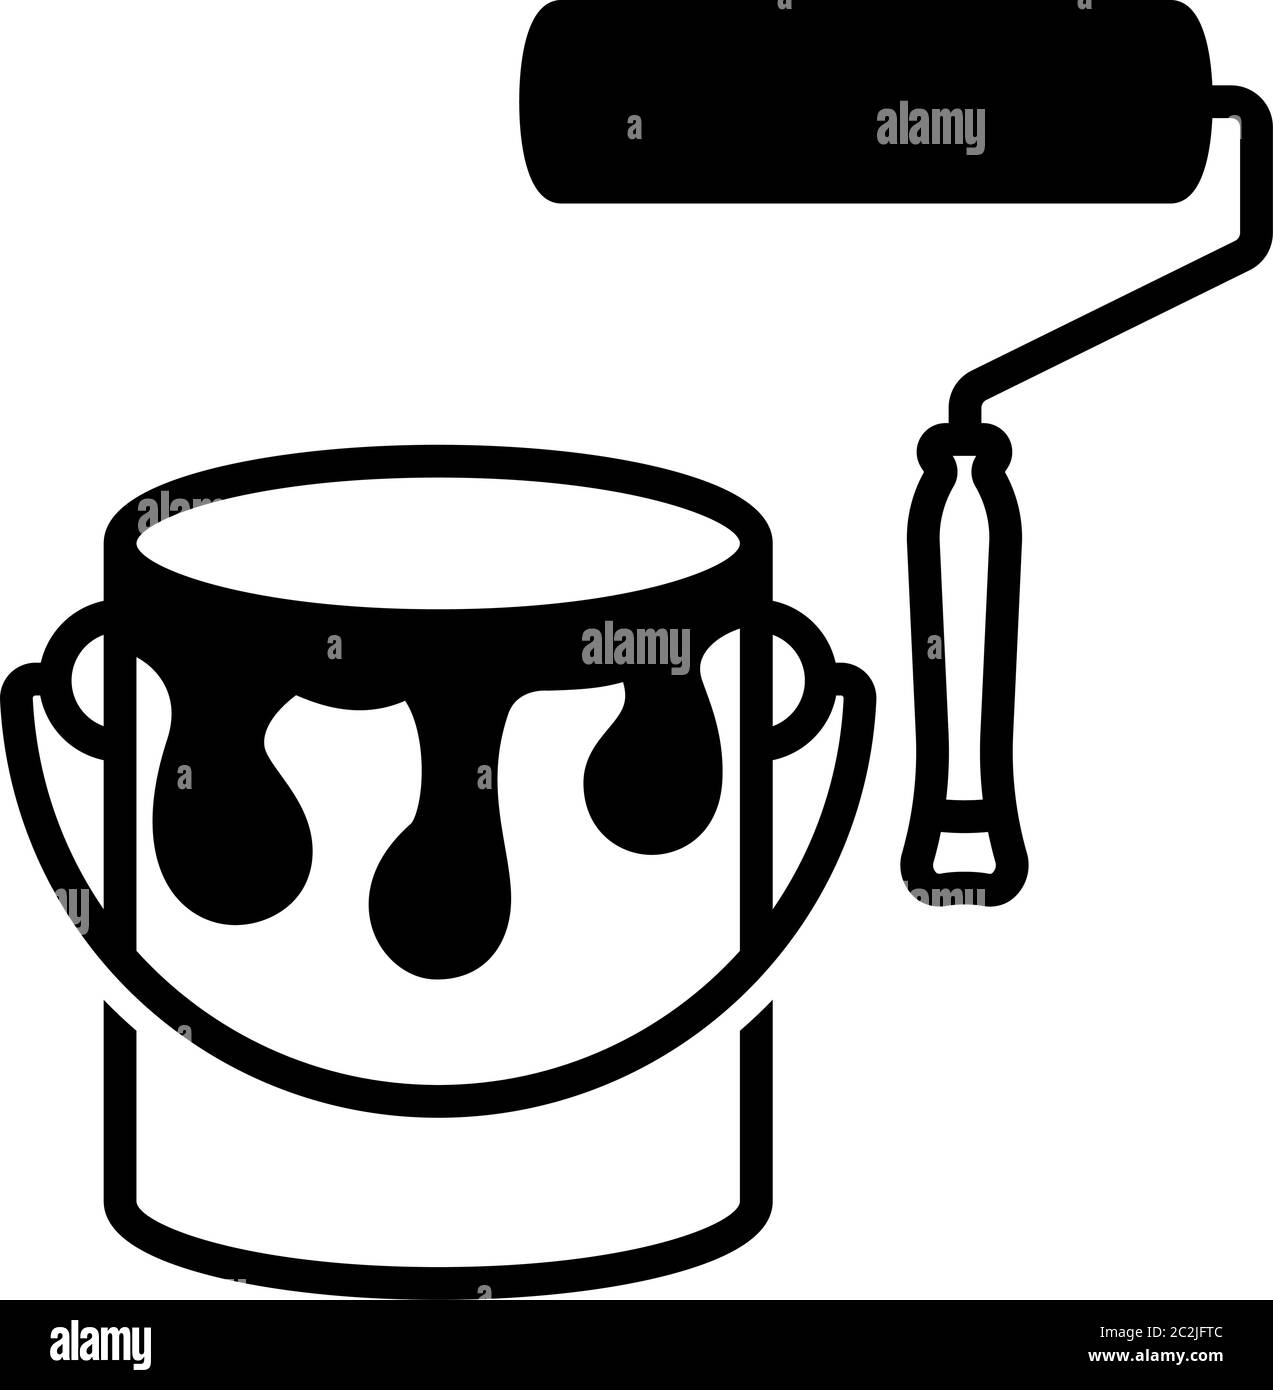 Paint Roller And Paint Bucket Icon Vector Art Illustration Stock Vector Image Art Alamy